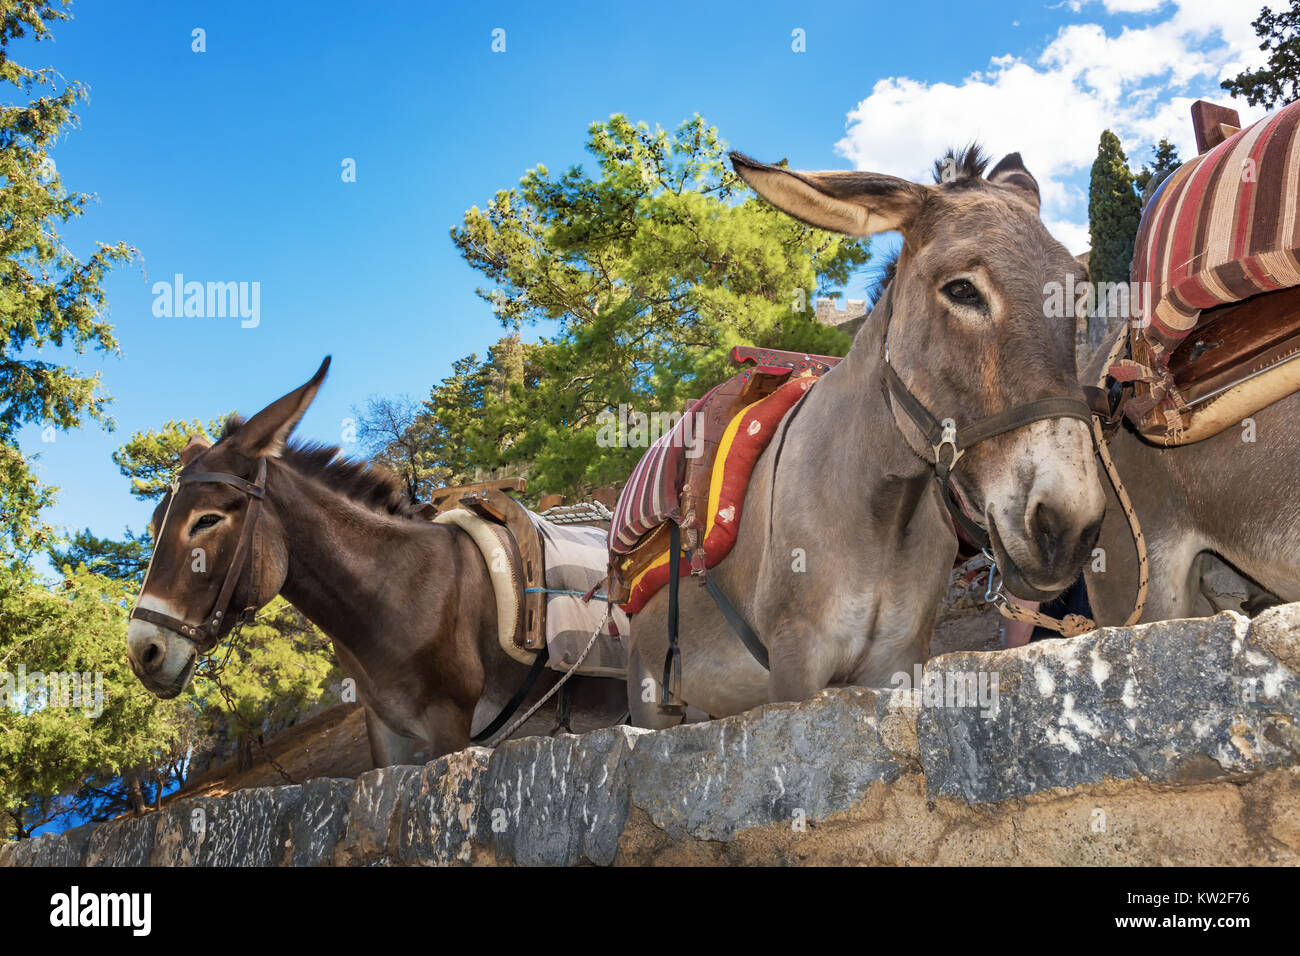 Donkey taxi – donkeys used to carry tourists to Acropolis of Lindos (Rhodes, Greece) - Stock Image